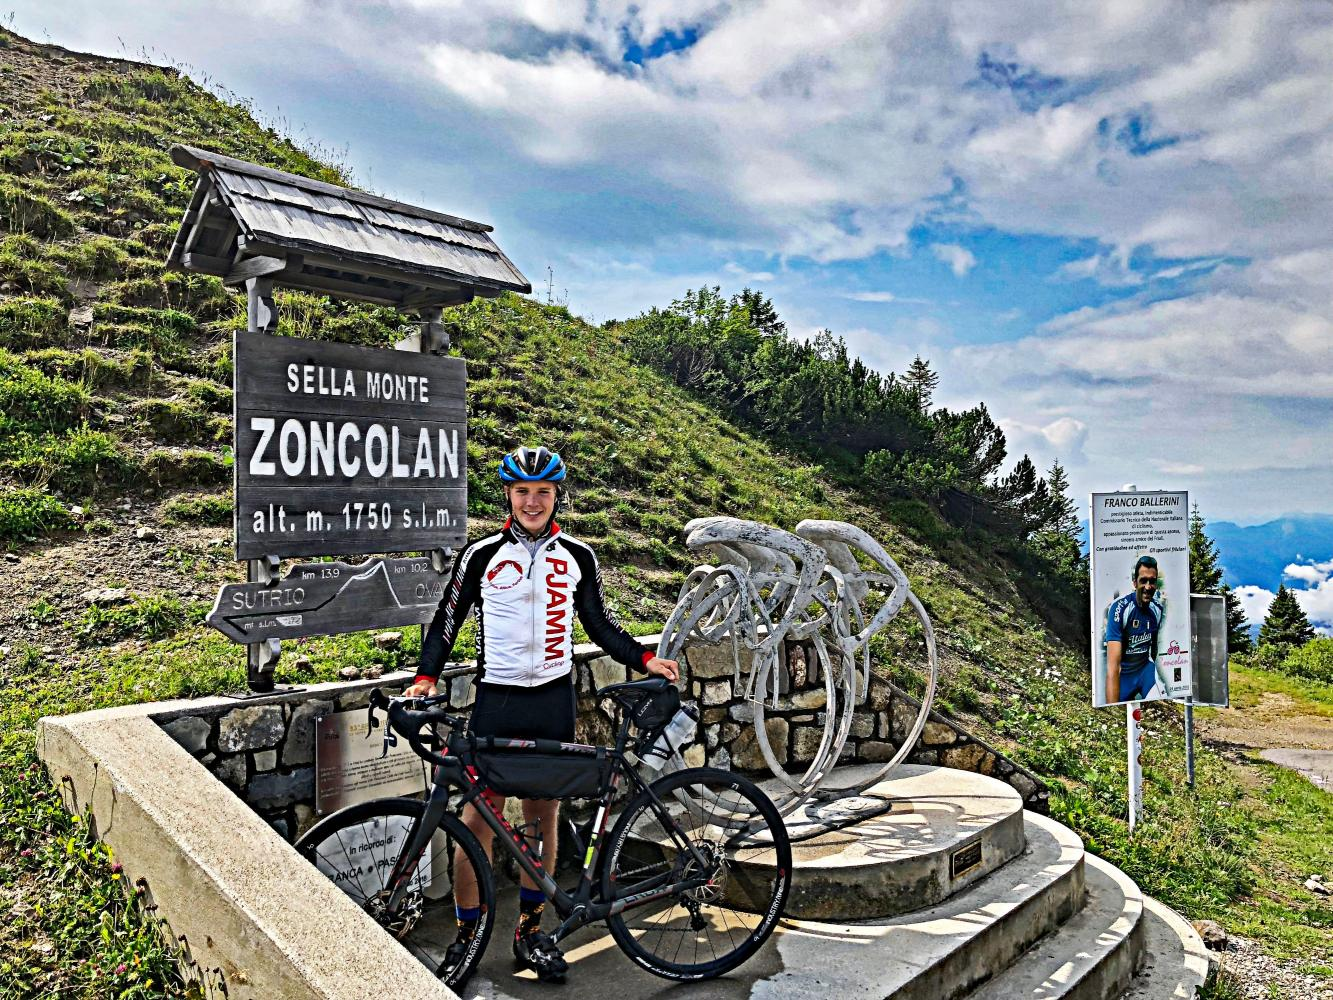 Monte Zoncolan (Priola) Bike Climb - PJAMM Cycling